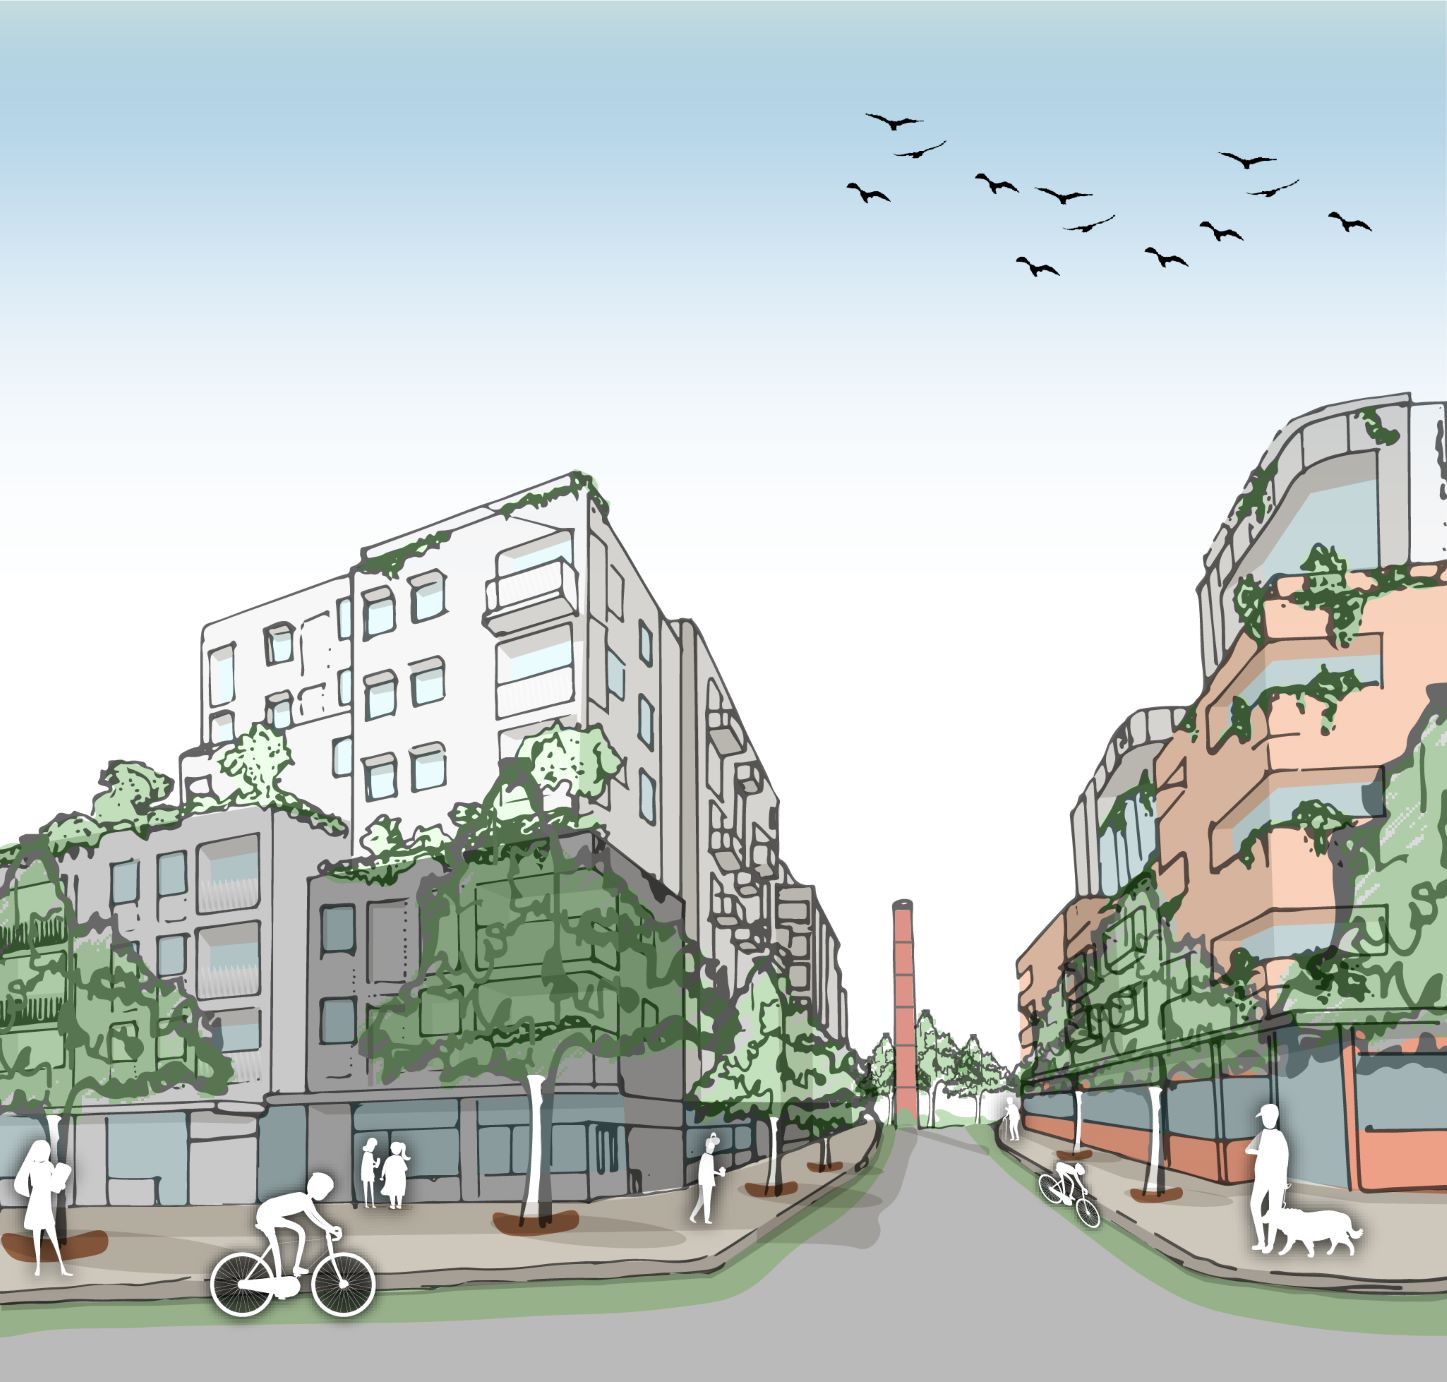 Highett Gasworks artist impression showing a residential development up to 8 storeys in the centre of the site and the chimney which will remain. The picture shows a cyclist, dog walker and other pedestrians using the site.